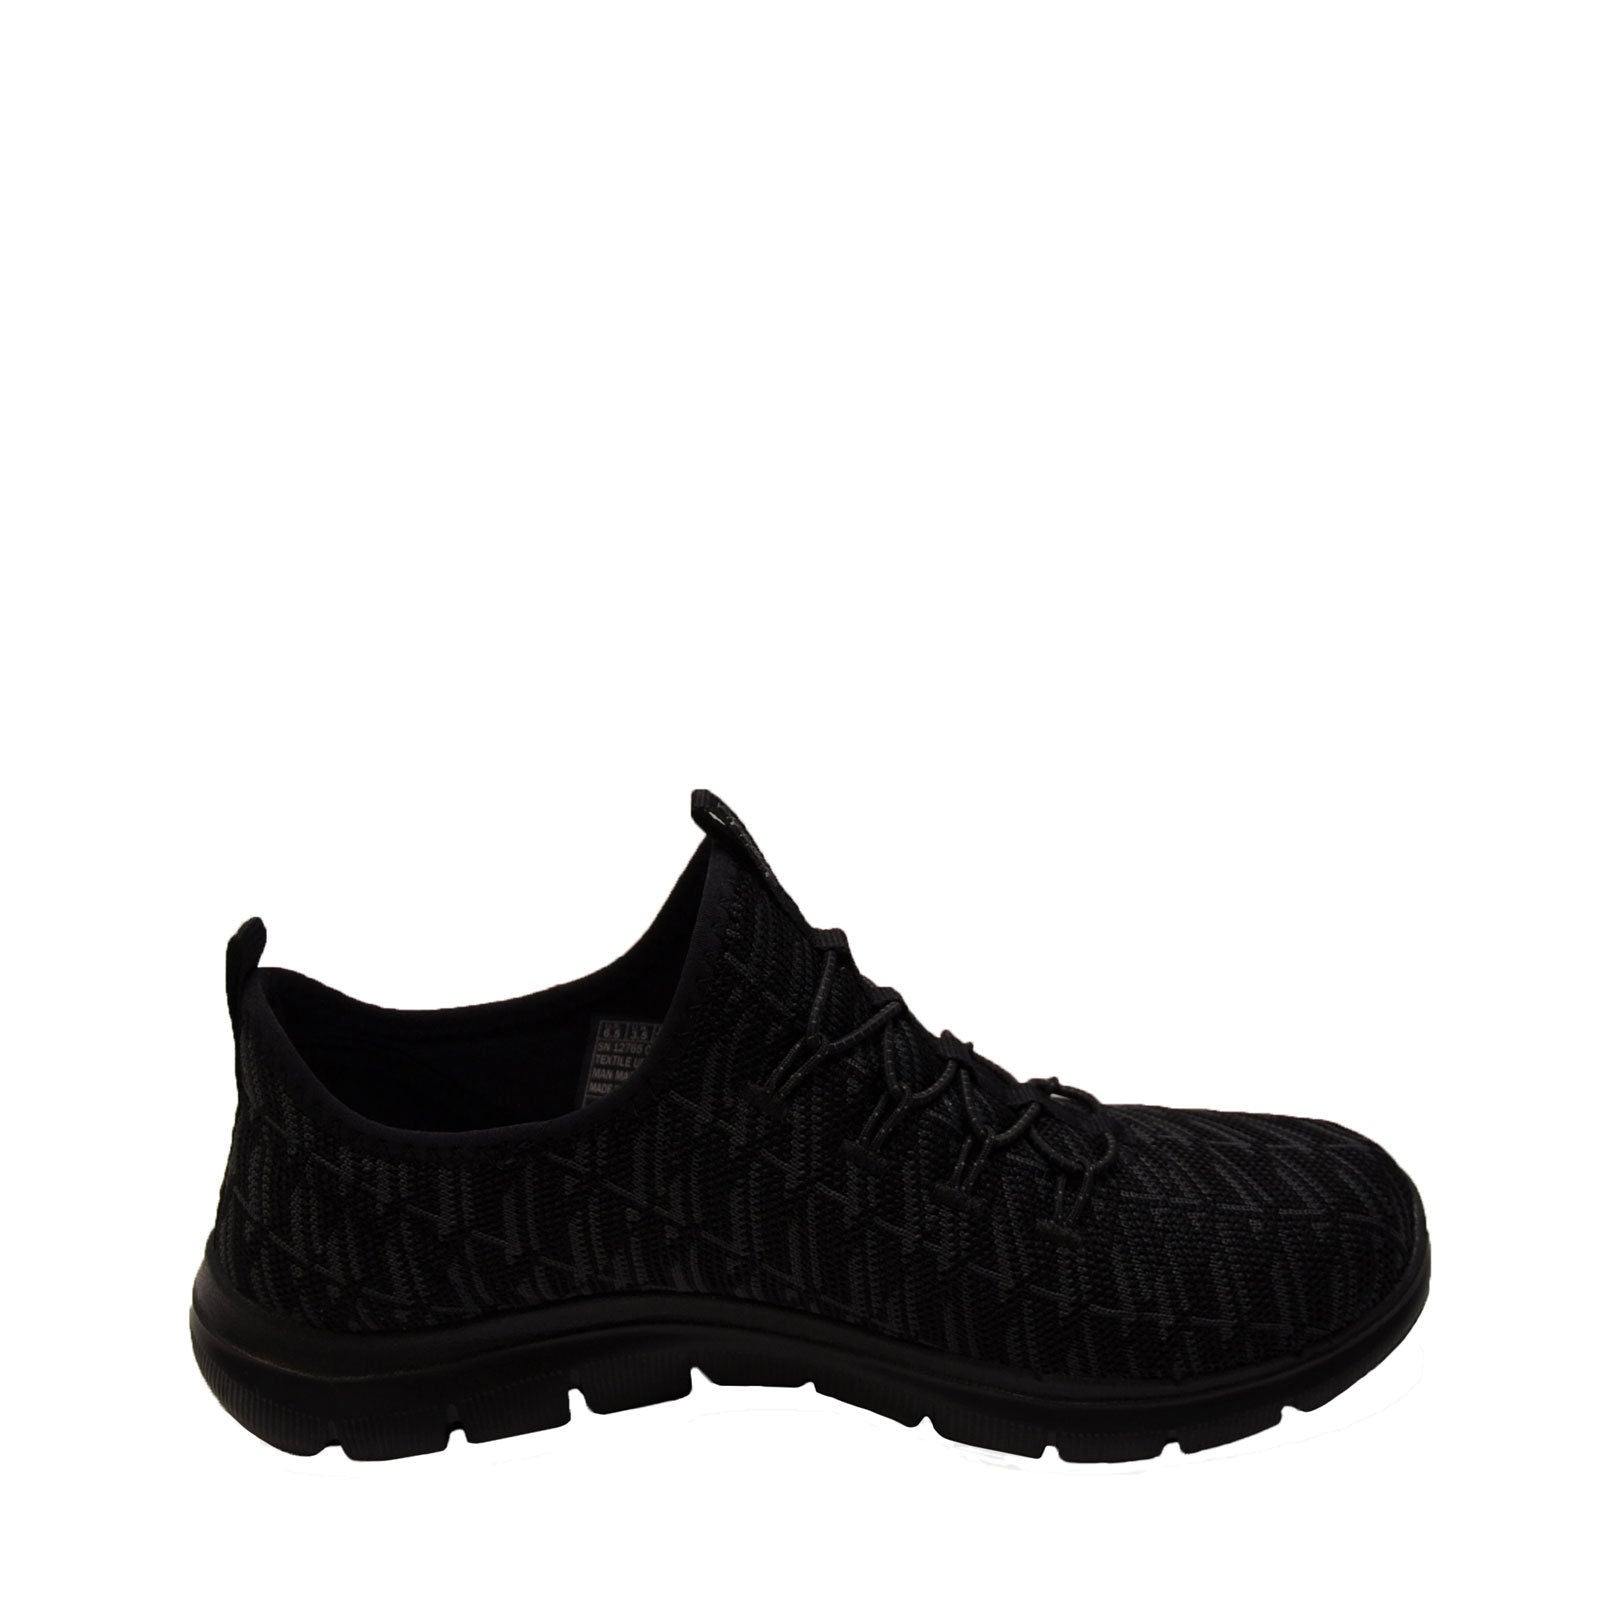 Skechers Flex Appeal 2.0 Insights Black